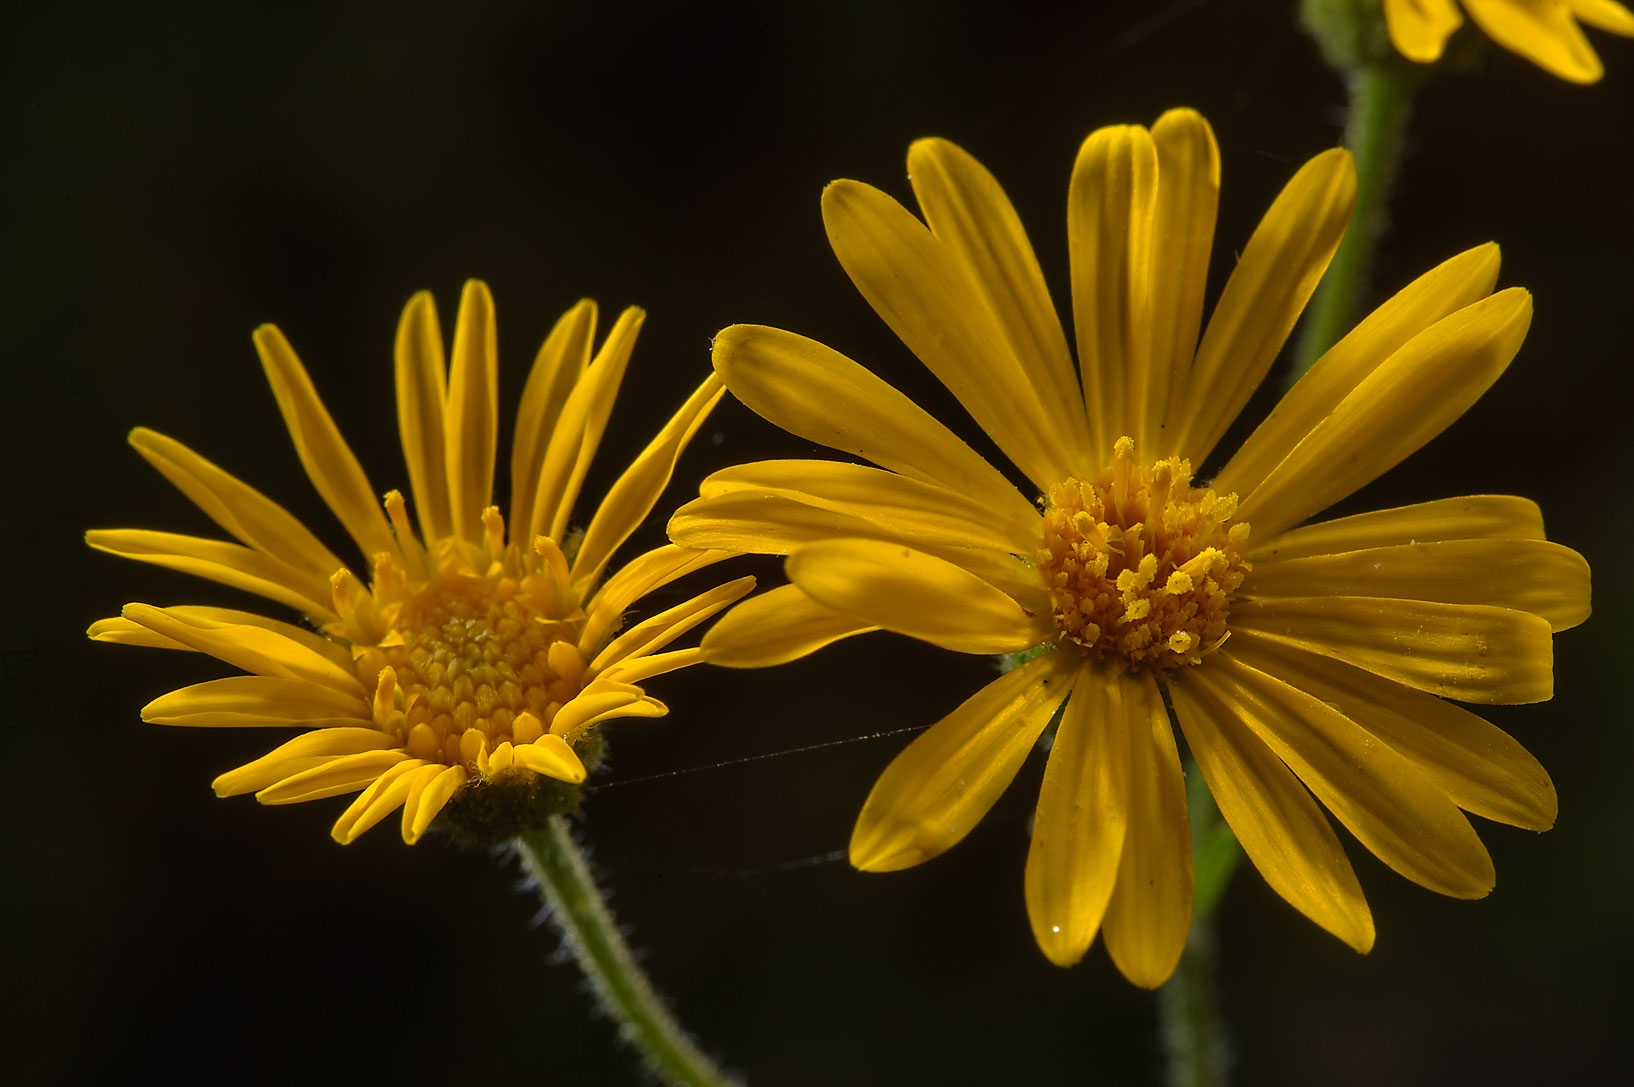 Yellow asters on Lost Pines Trail in Bastrop State Park. Bastrop, Texas